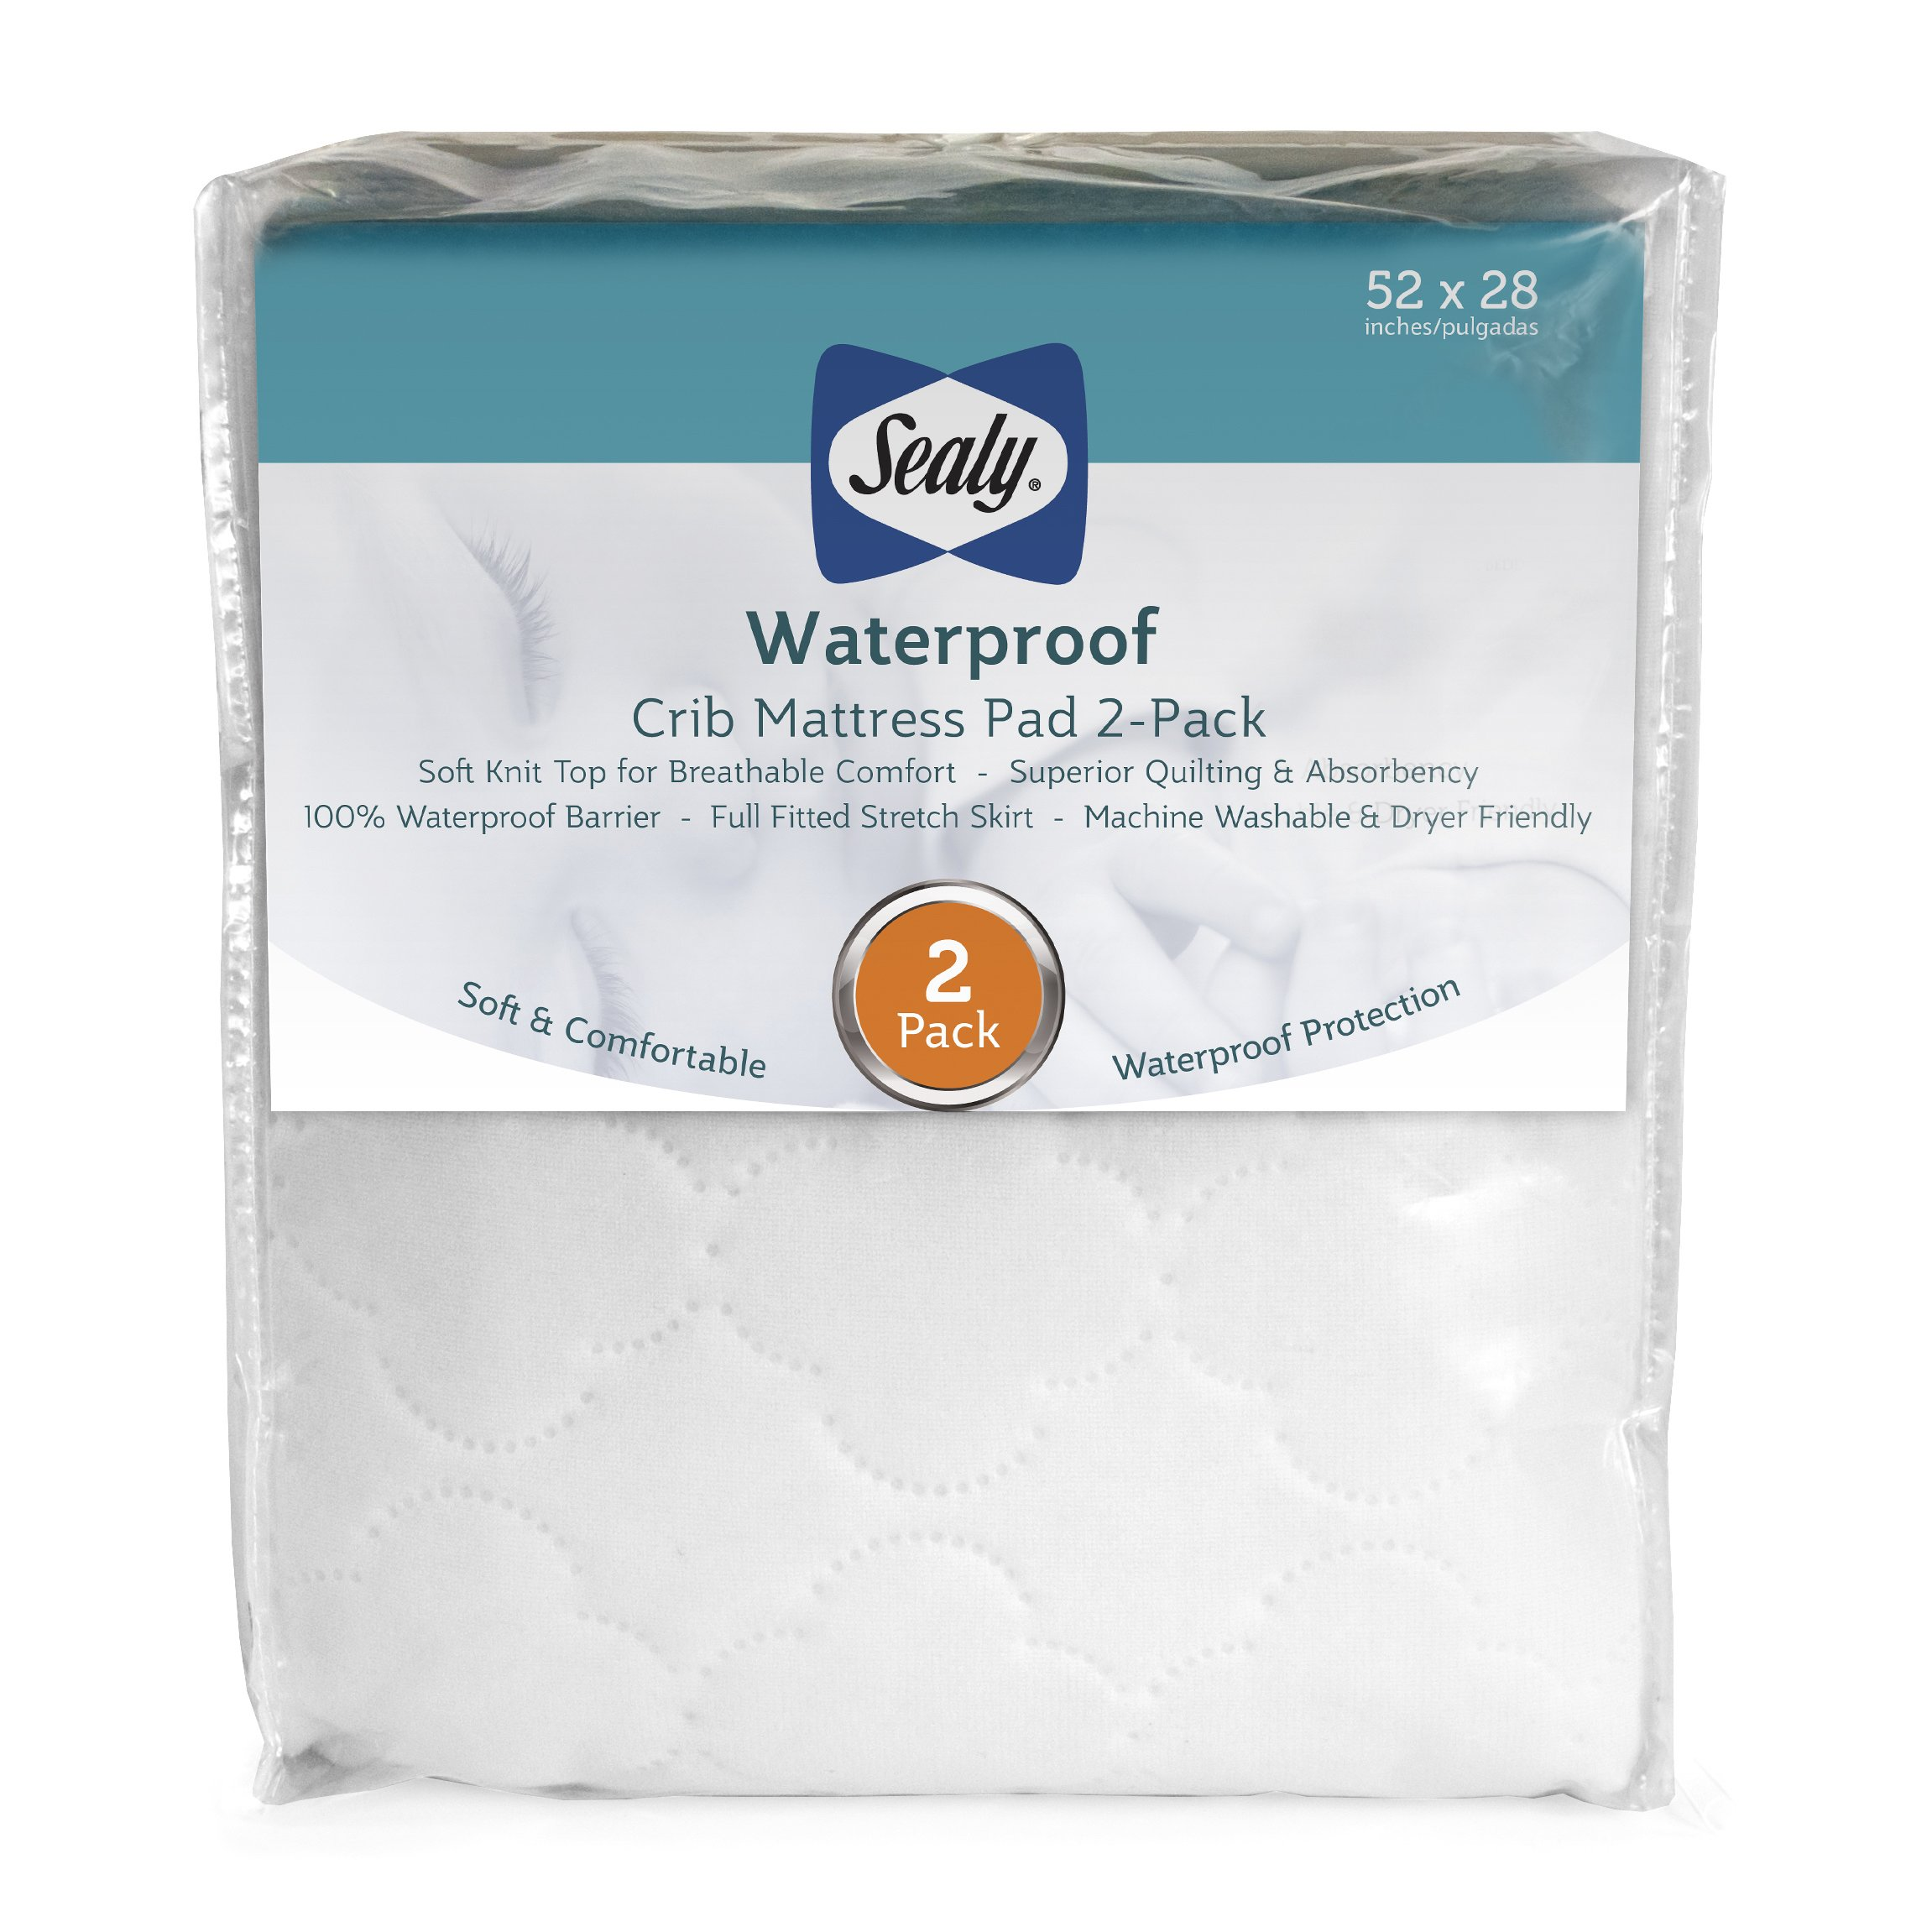 "Sealy Waterproof Fitted Crib/Toddler Mattress Pad Cover 2-Pack - 100% Waterproof, Deep Fitted Stretch Skirt, Machine Washable & Dryer Friendly 52""x28"" - 2 Protector Pads (White)"